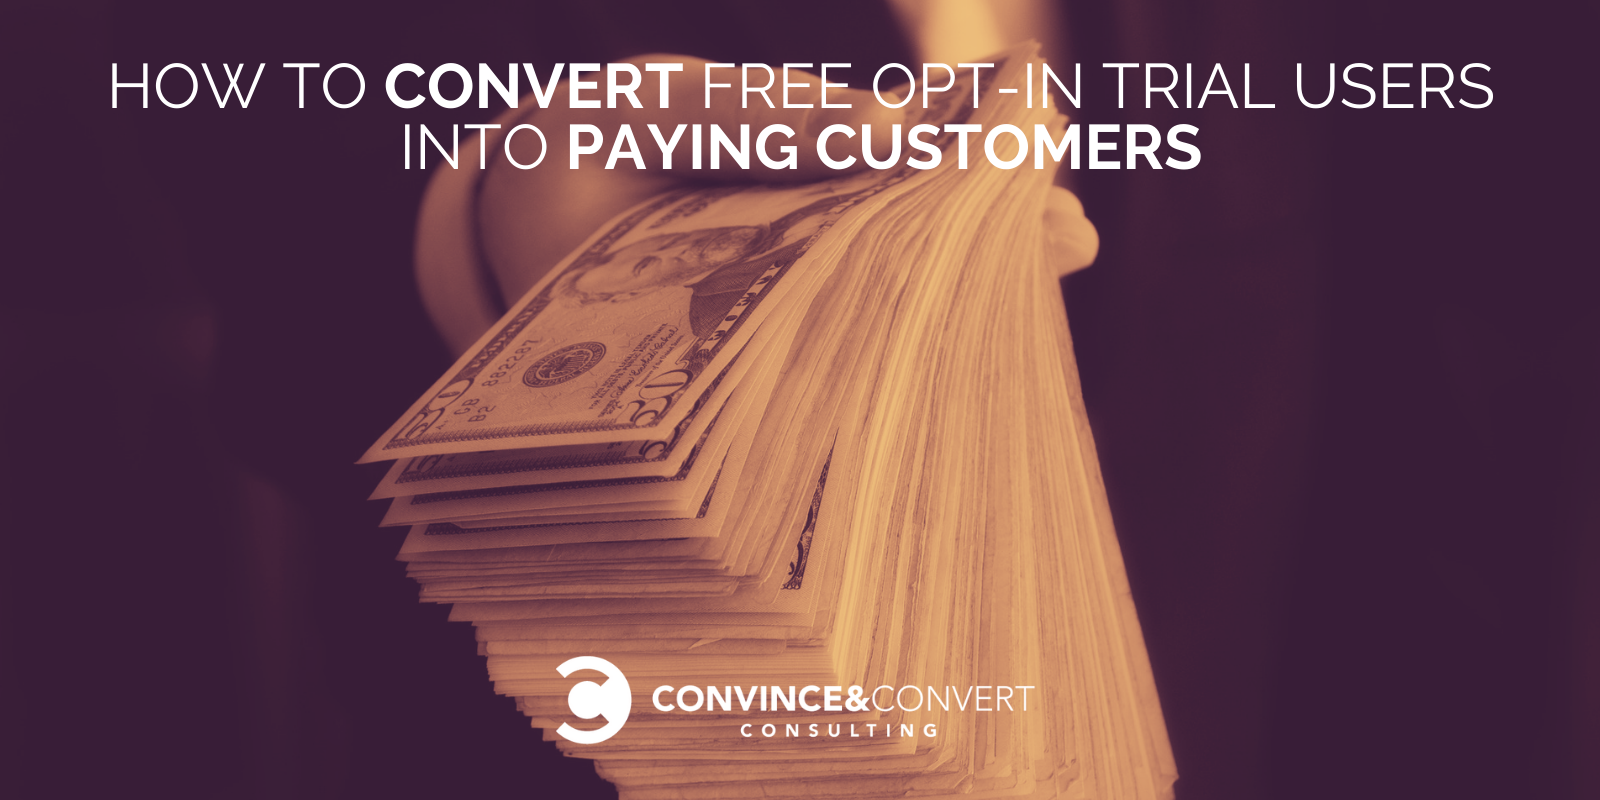 How to Convert Free Opt-in Trial Users into Paying Customers